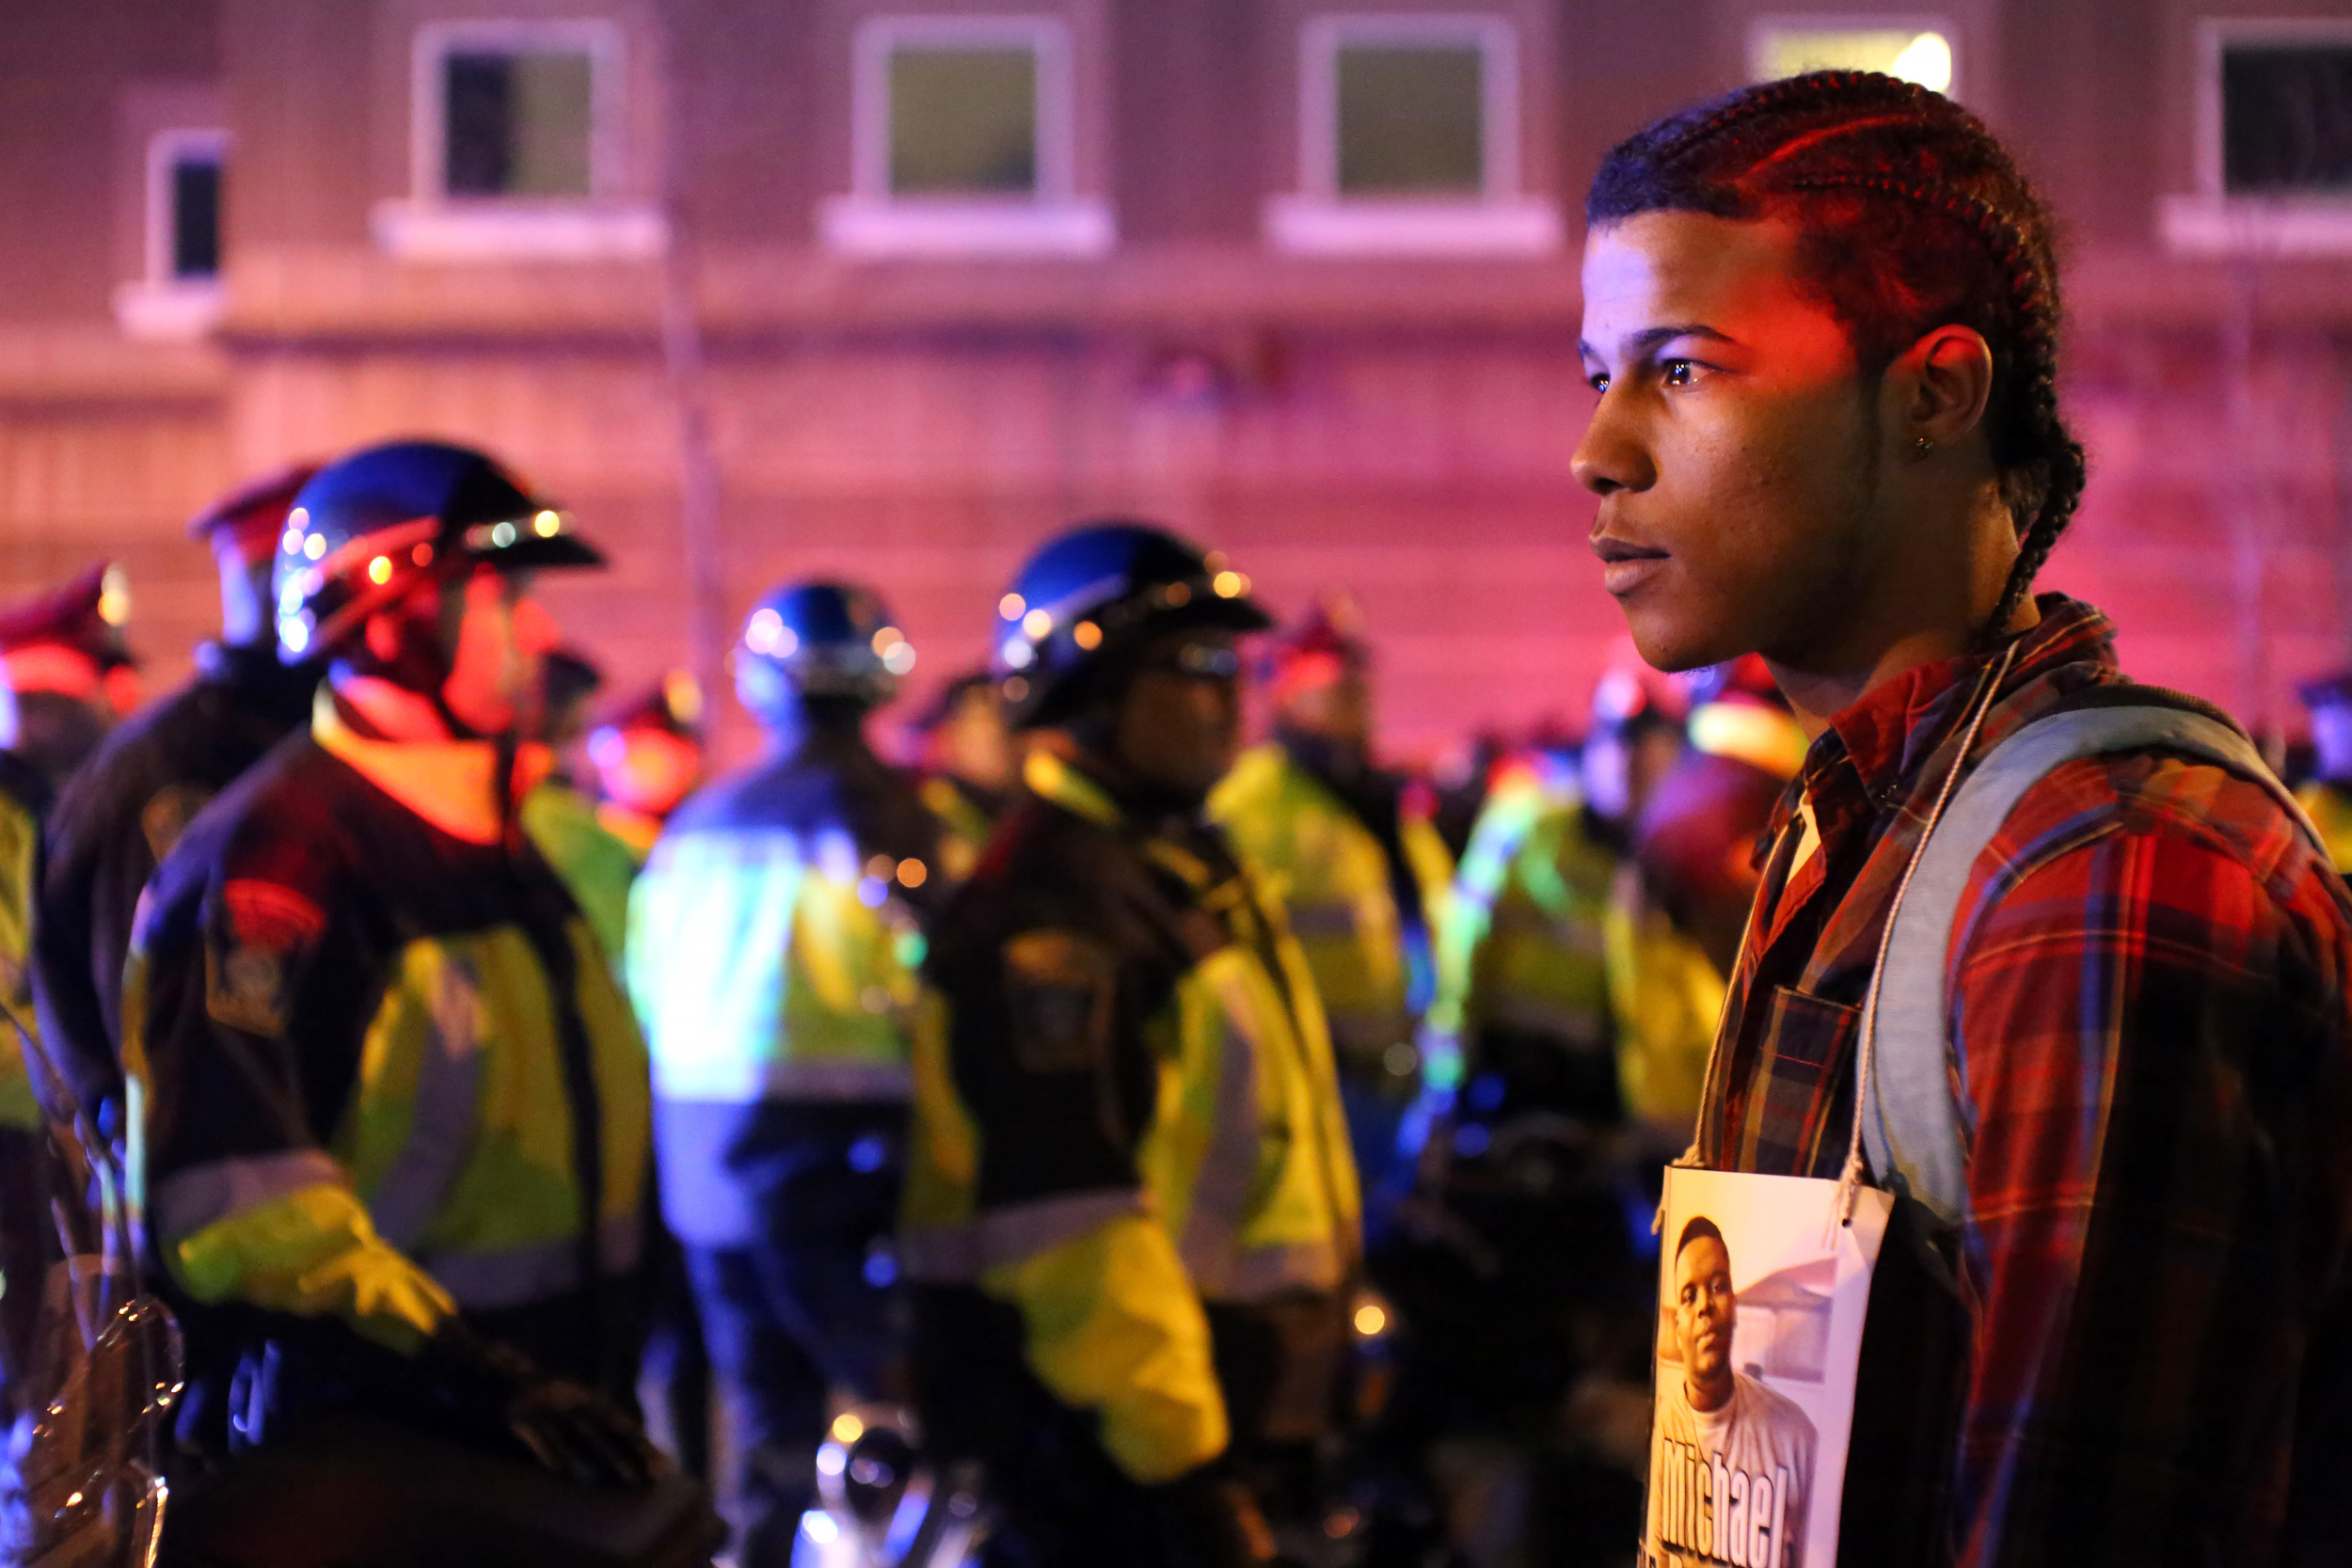 Emerson Brandao, from Roxbury, MA, stands in front of officers during a protest in Boston, MA, on Nov. 25, 2014, in response to the failed indictment of police officer Darren Wilson for the murder of Mike Brown in Ferguson, MI.